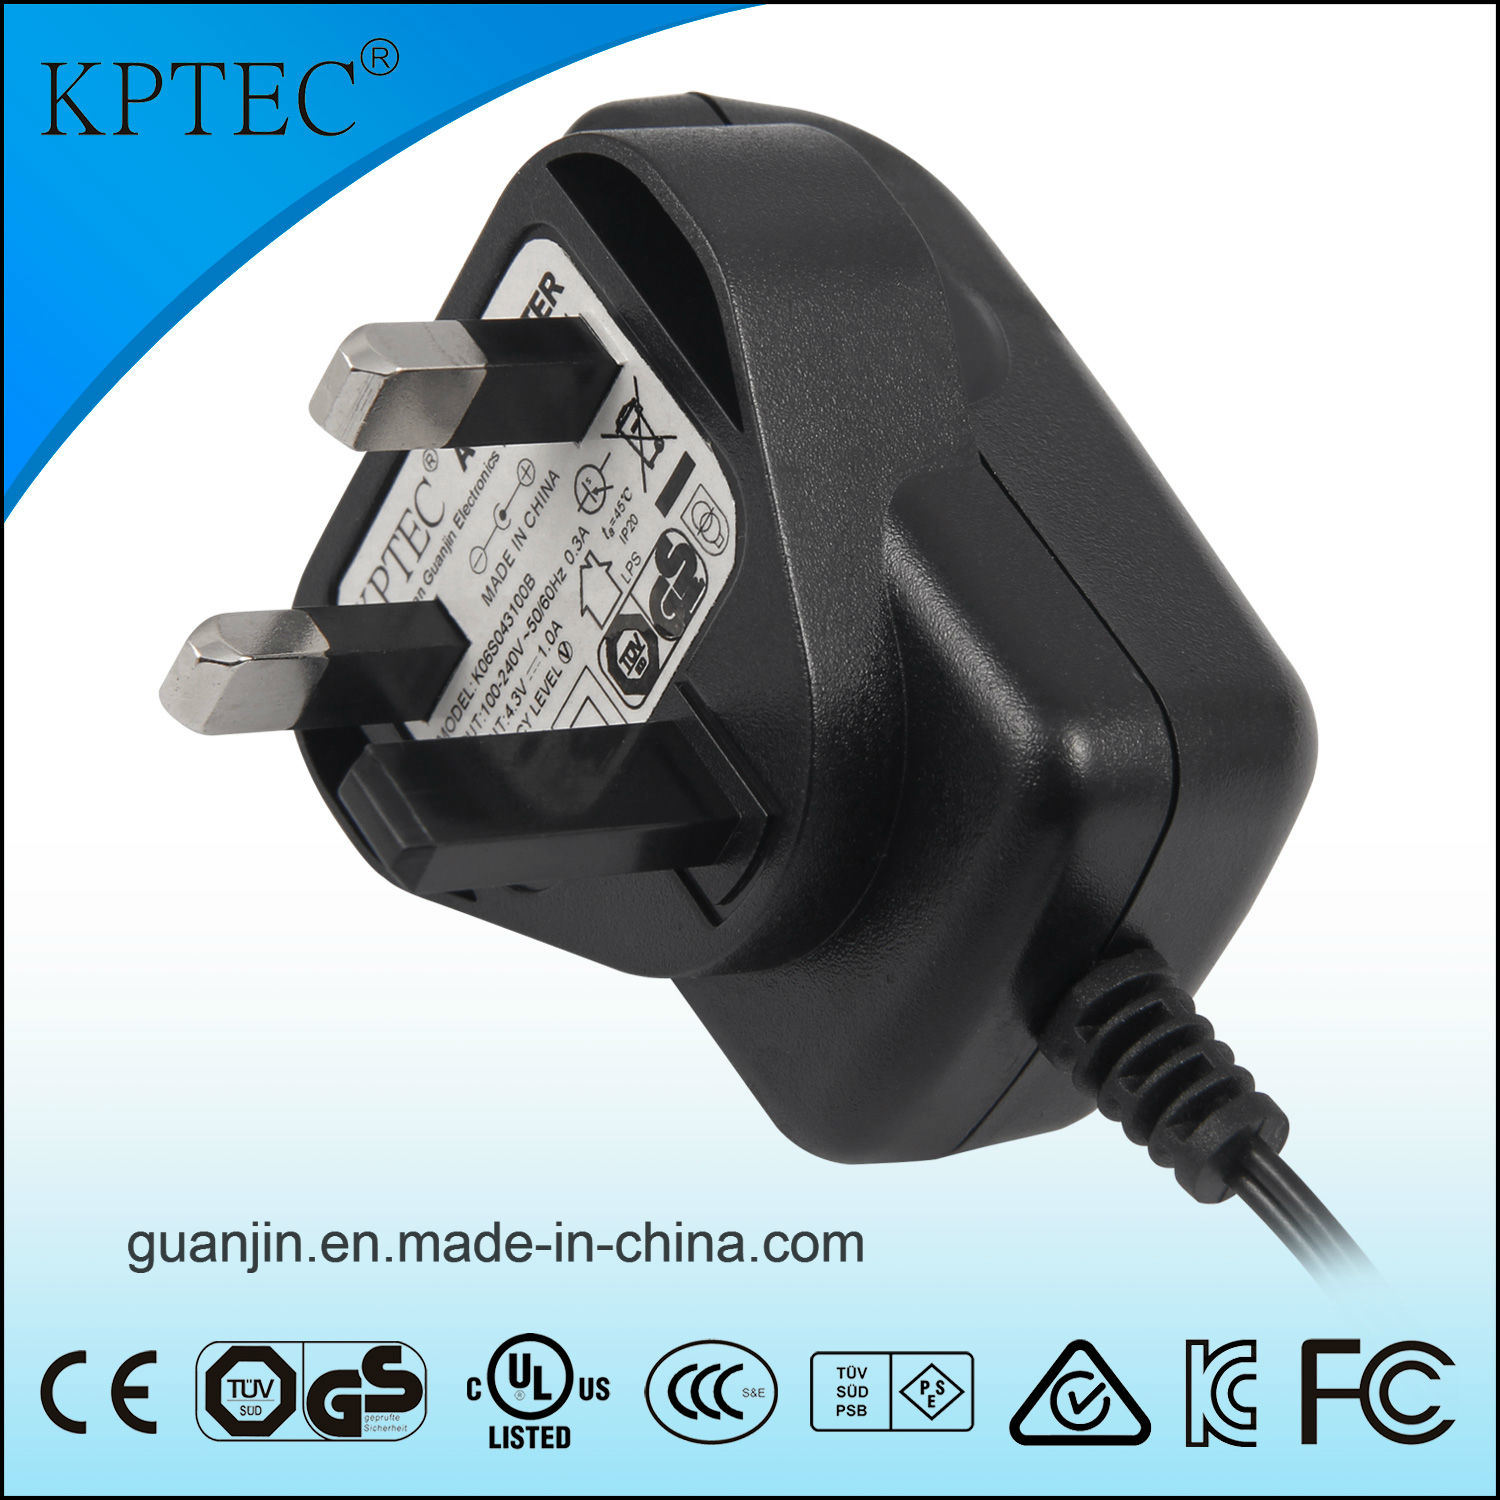 Guanjin Power Supply with Ce for Robot Cleaner